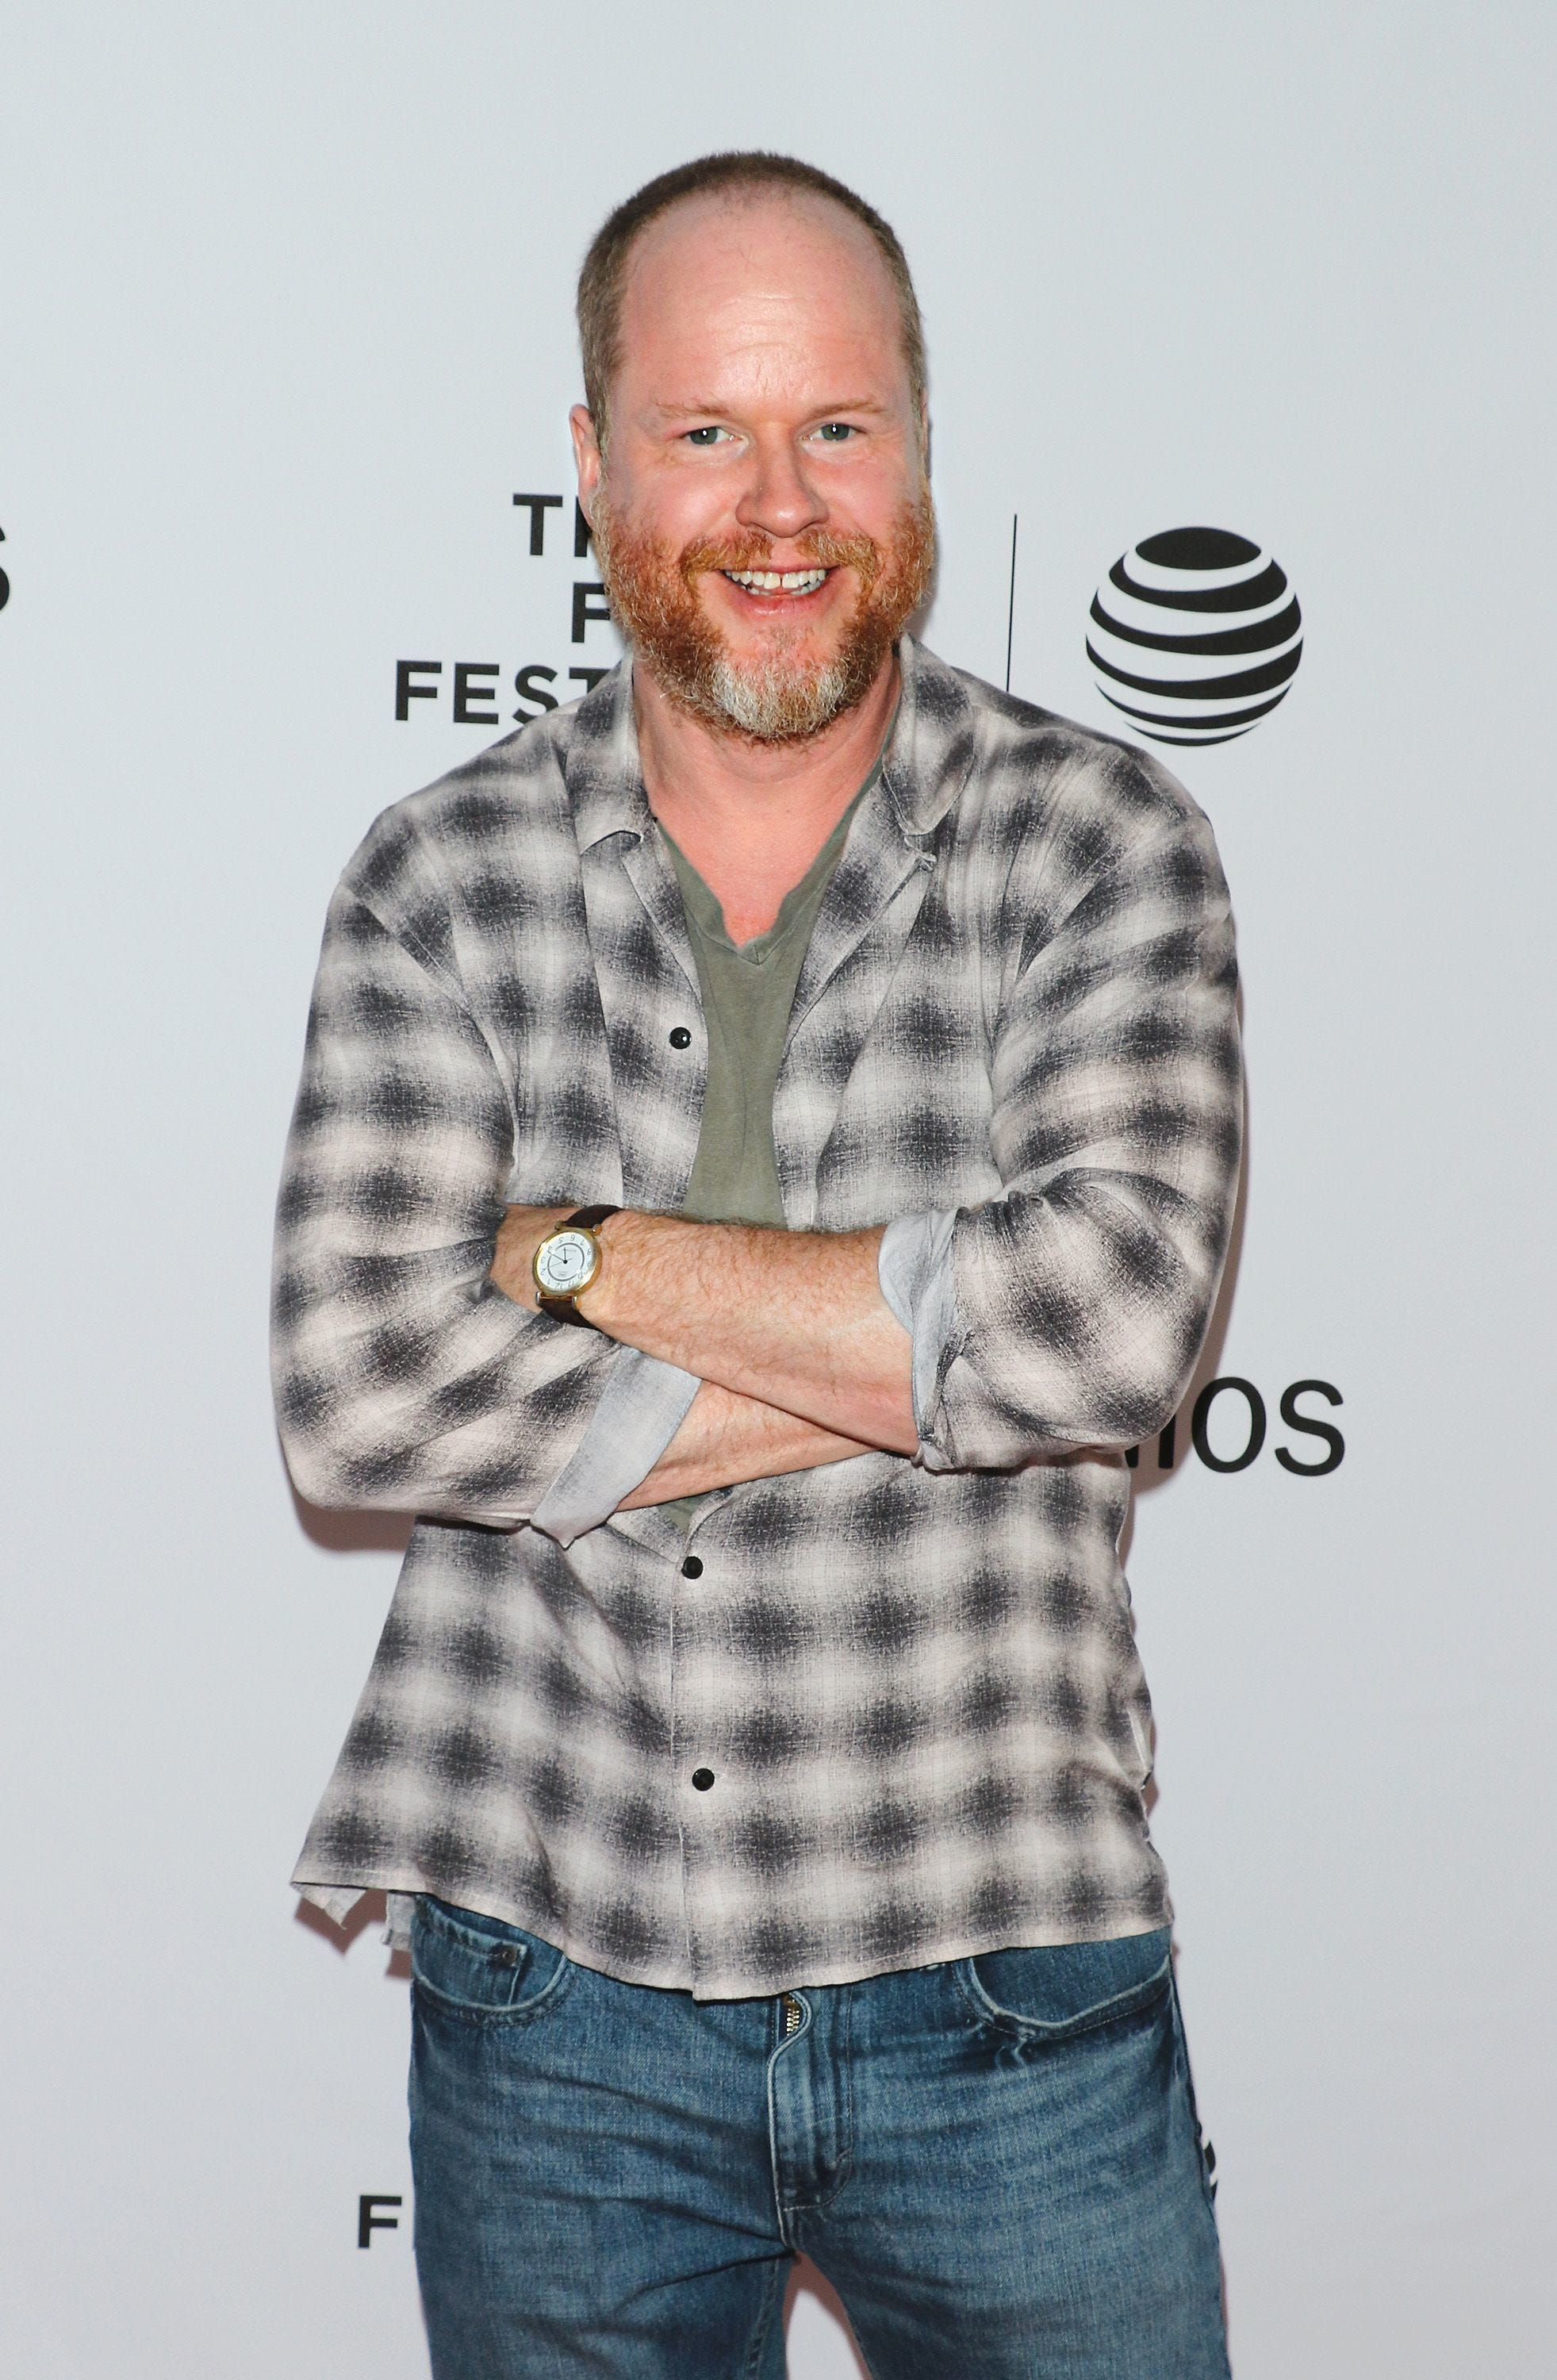 Director Joss Whedon amp apos s ex-wife alleges serial cheating